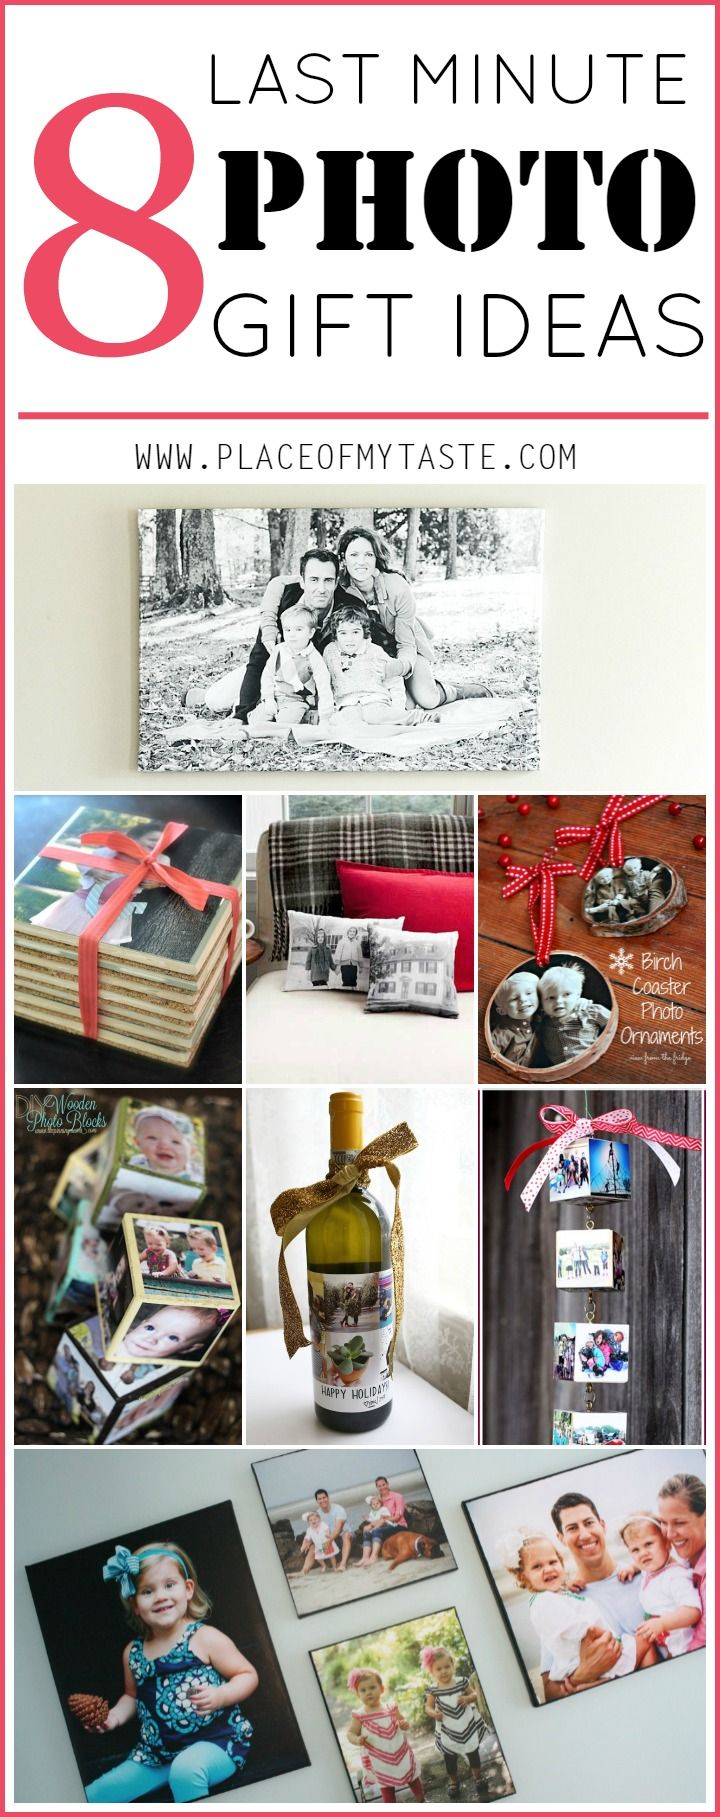 8 LAST MINUTE PHOTO GIFT IDEAS- Great Ideas that you can create last minute!! last minute photo gift ideas are the best!